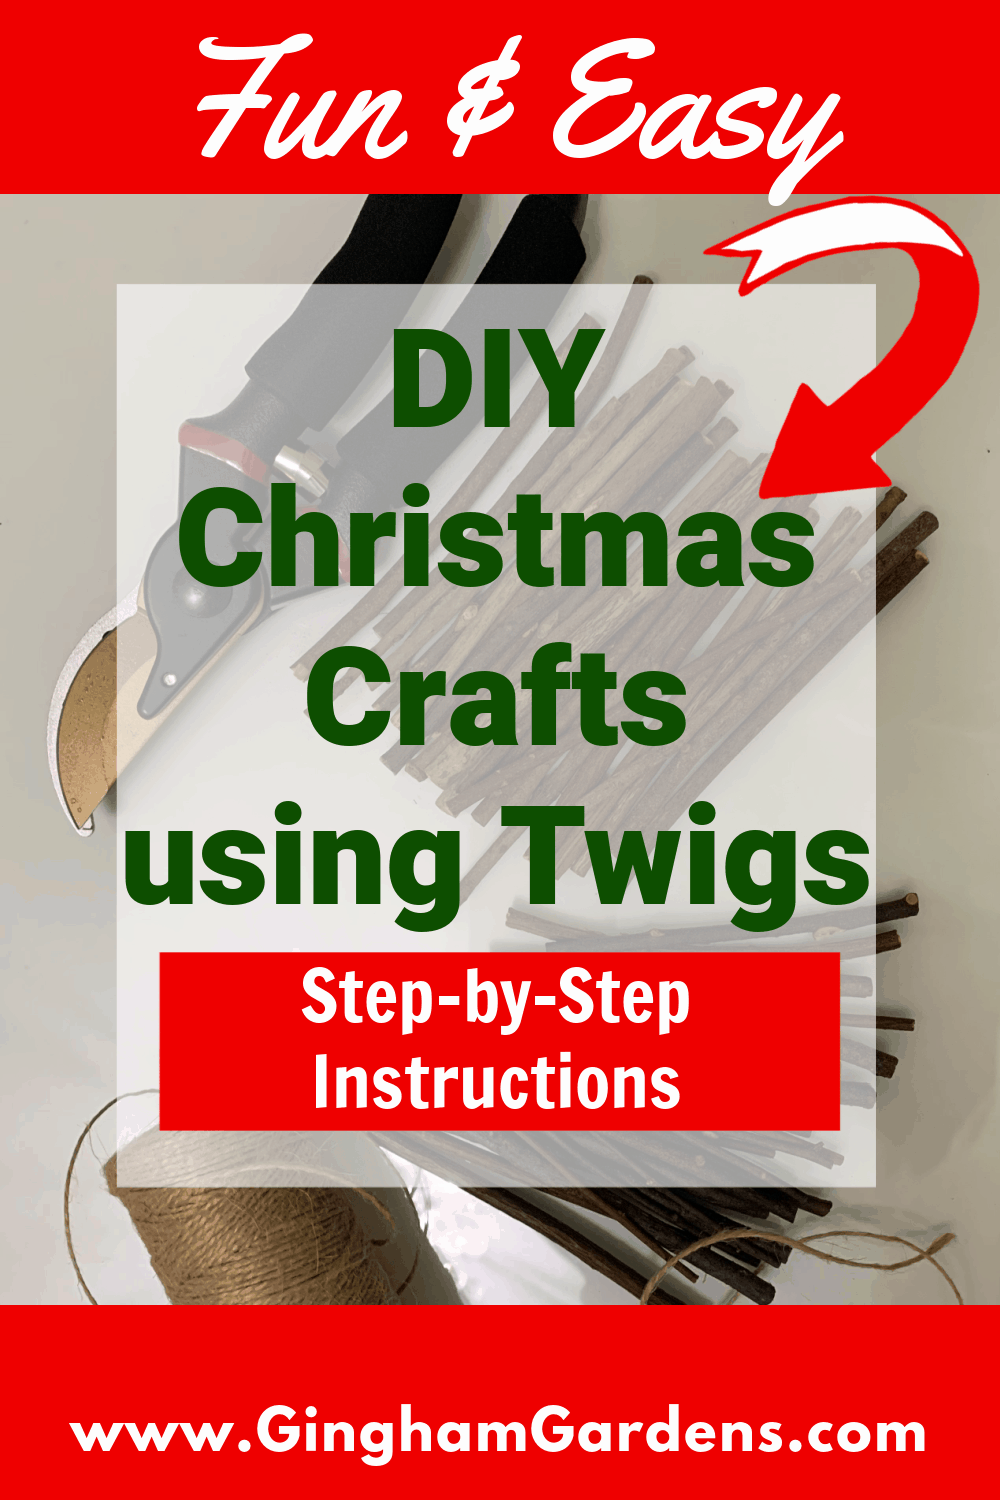 Image of Twigs and Supplies with Text Overlay - DIY Christmas Crafts Using Twigs